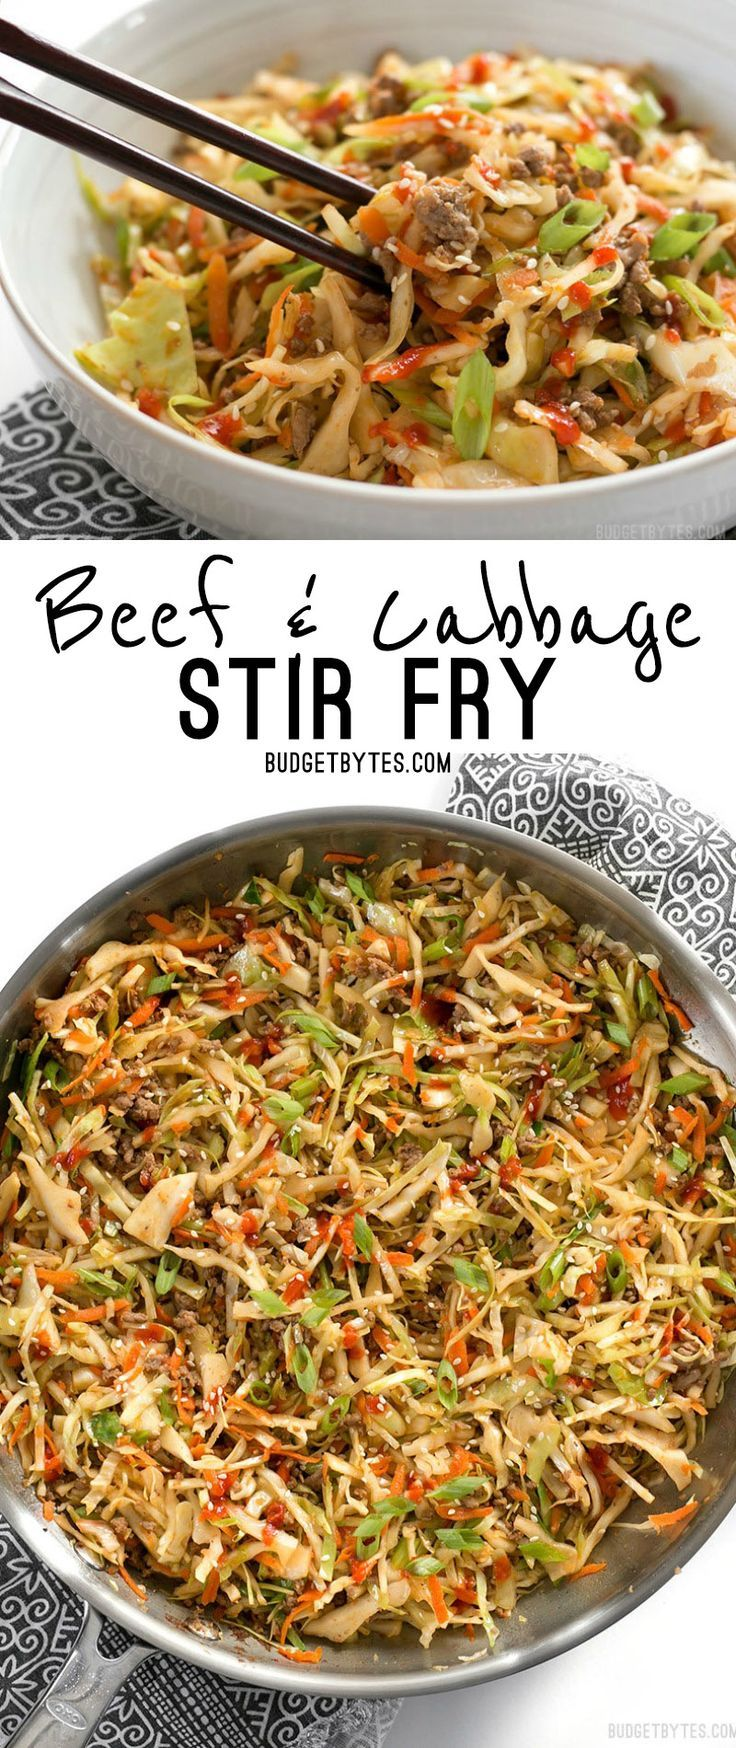 This fast and easy Beef and Cabbage Stir Fry is a filling low carb dinner with big flavor. http://BudgetBytes.com